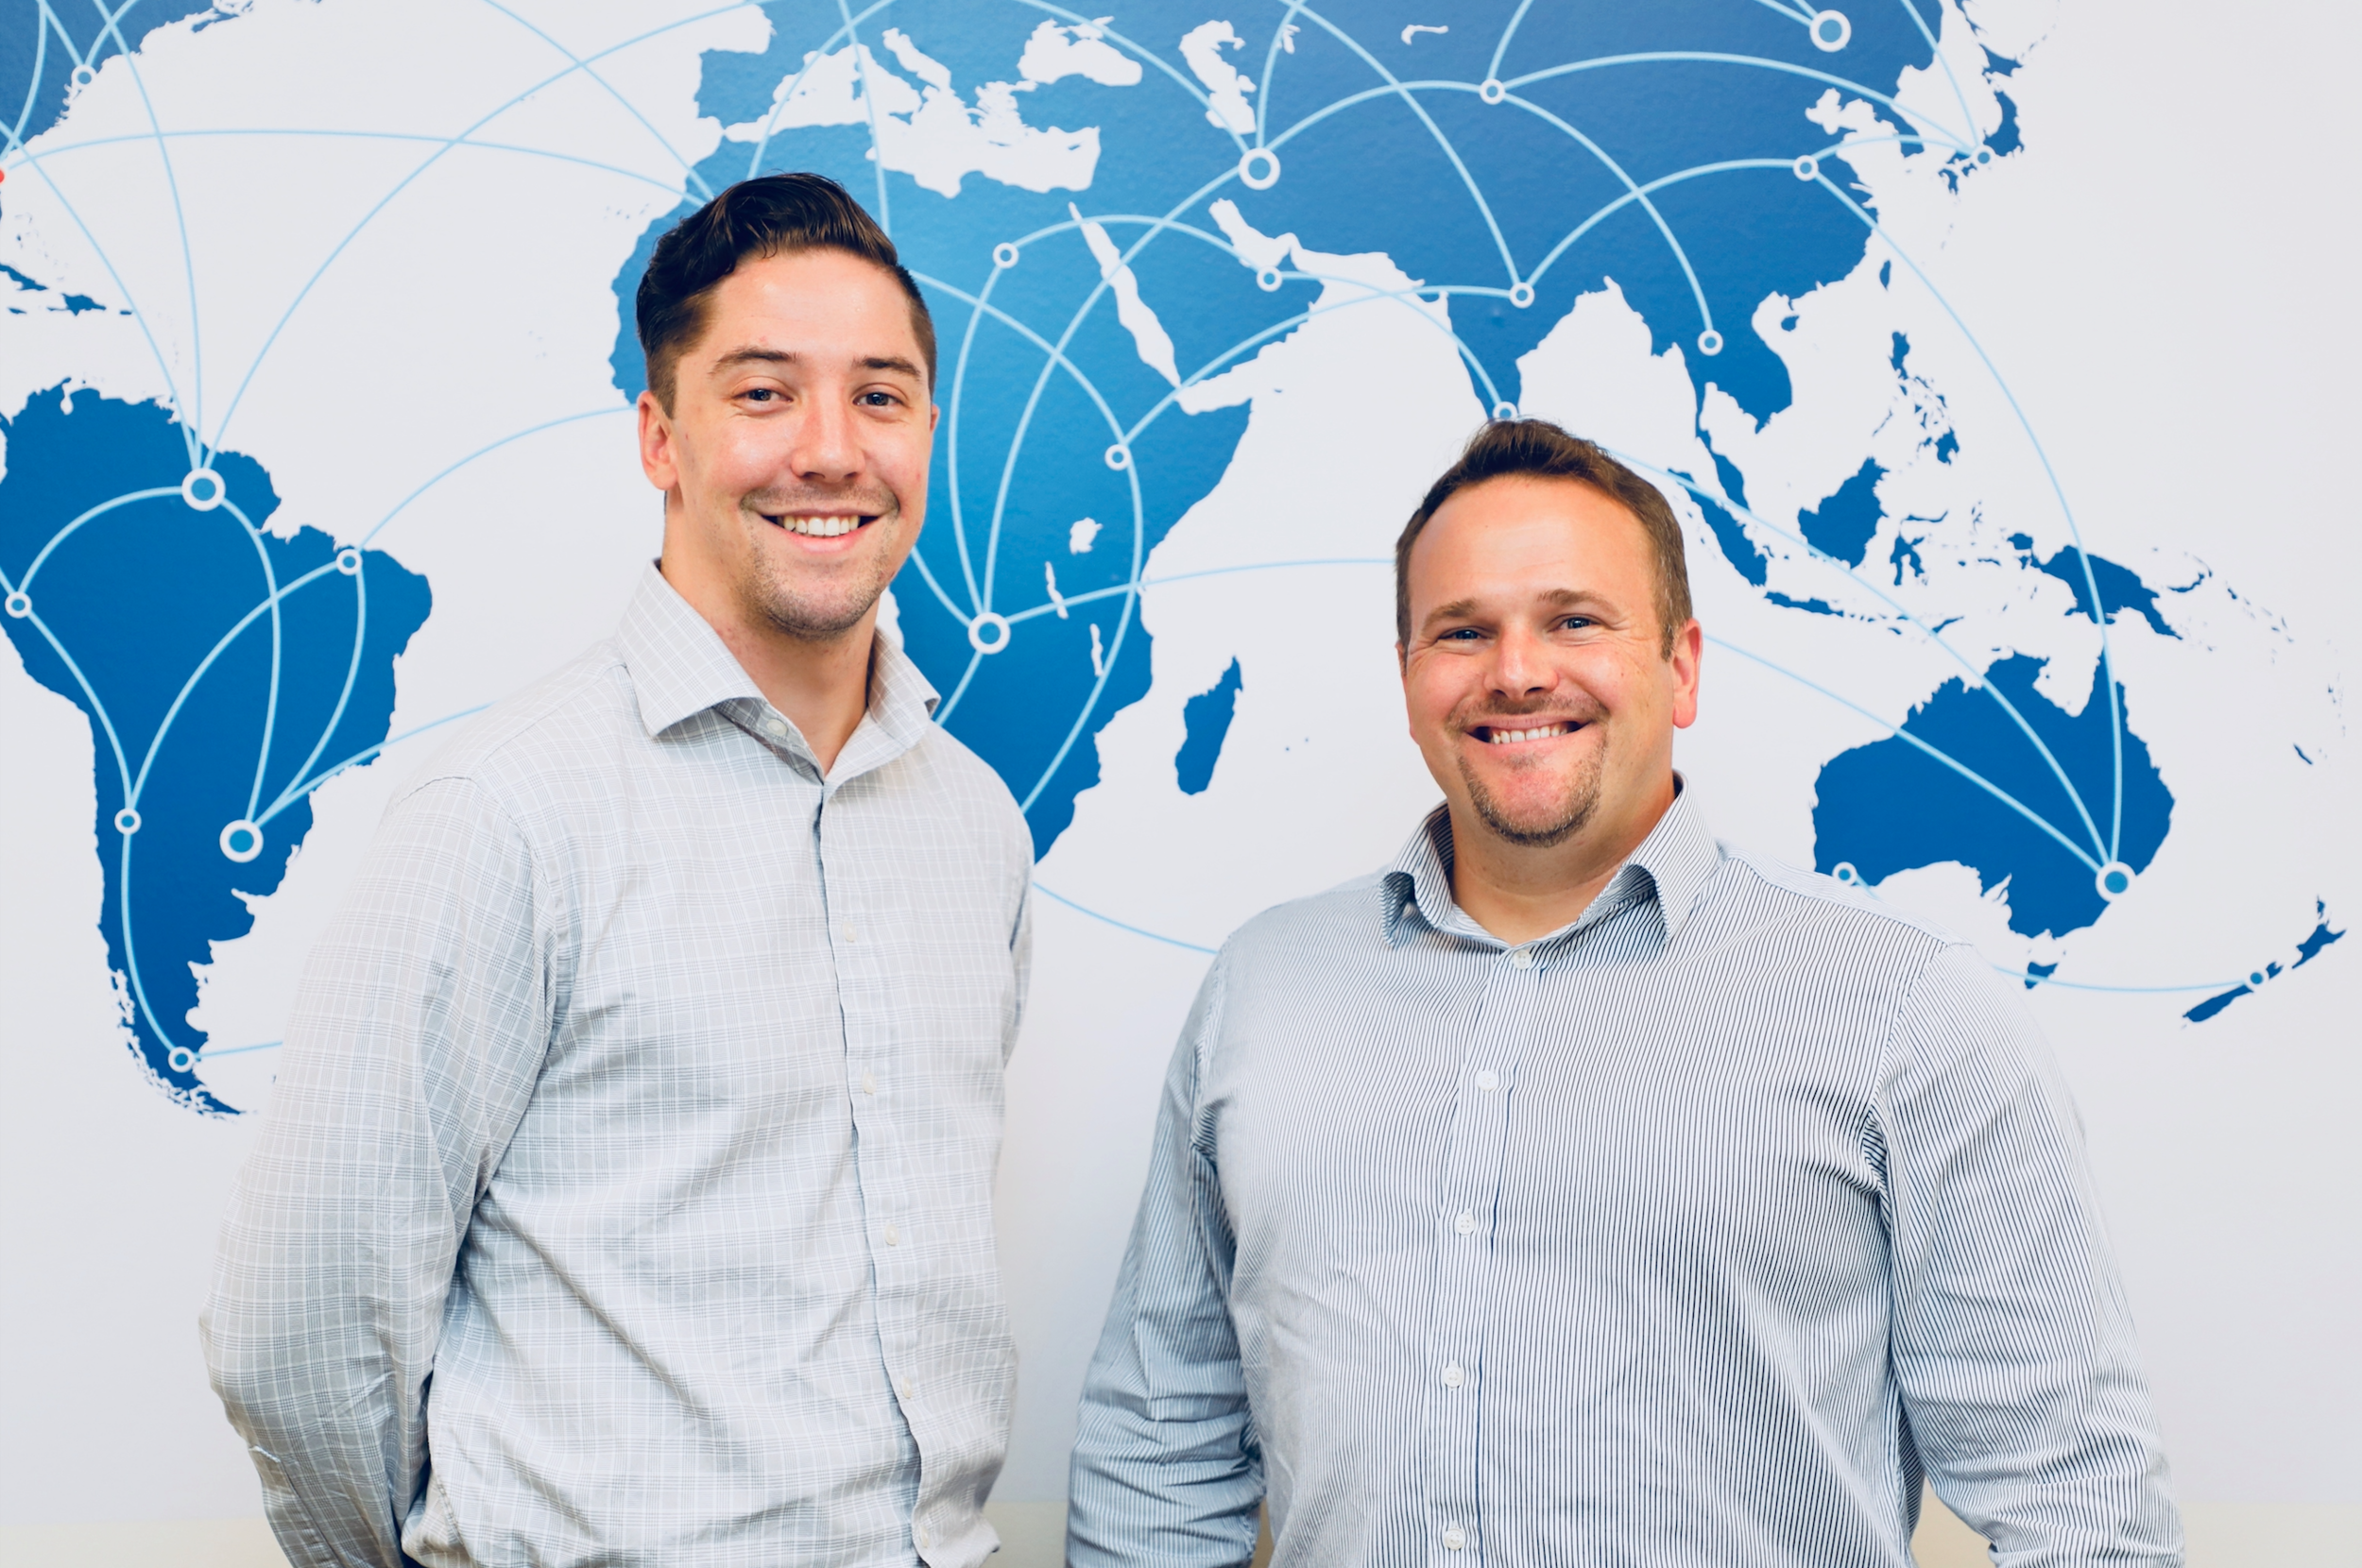 James Cowan and Will Bewley Co-Founders of Docity